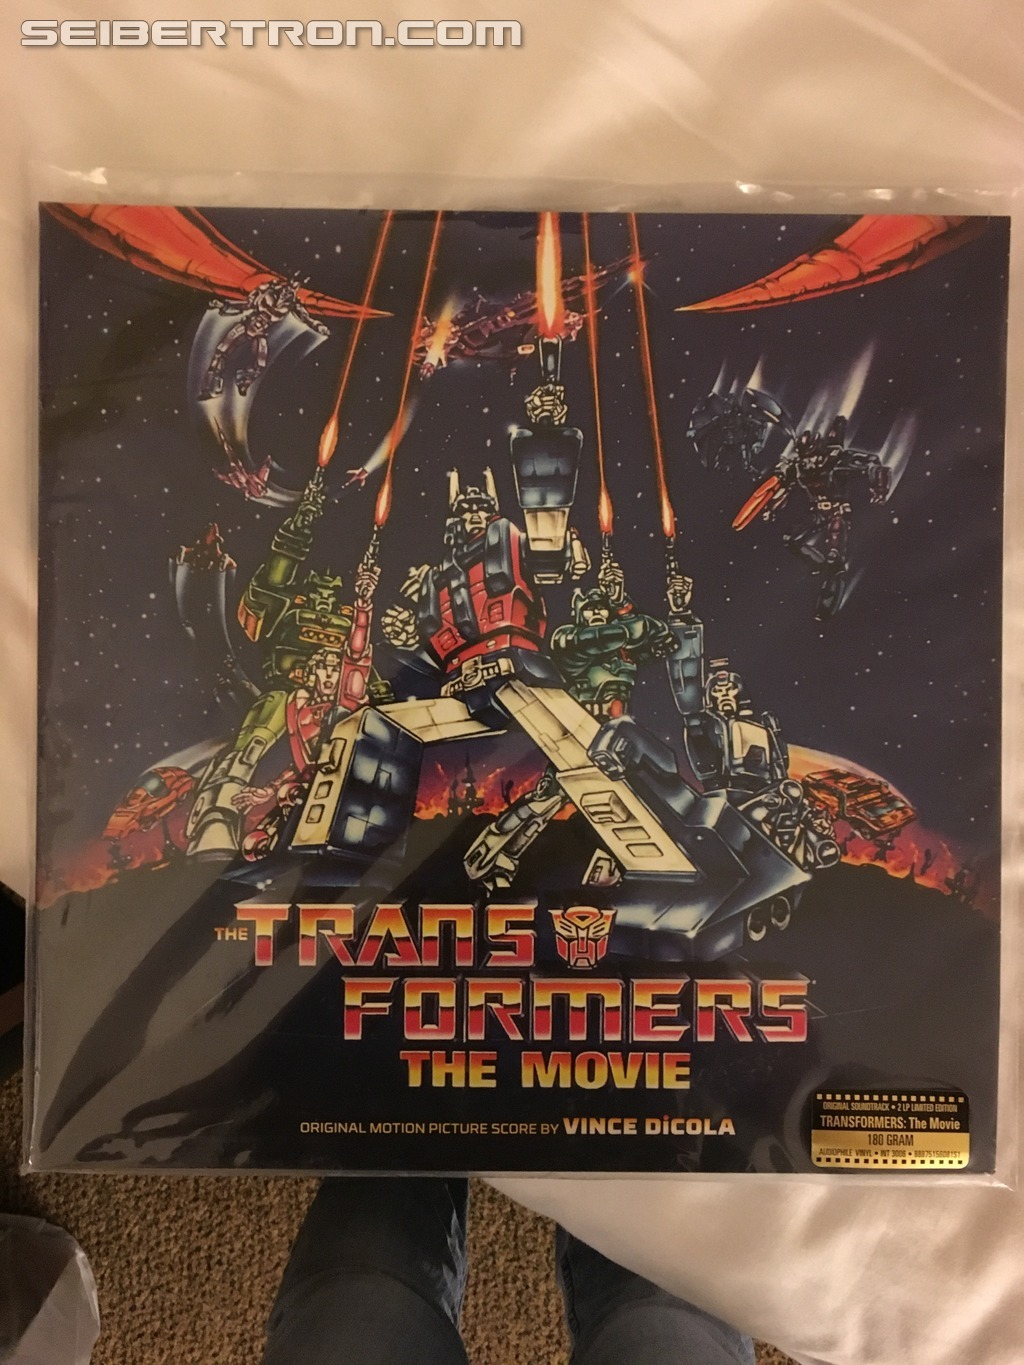 Transformers News: #Botcon2016 Limited Transformers The Movie CDs available at Concert